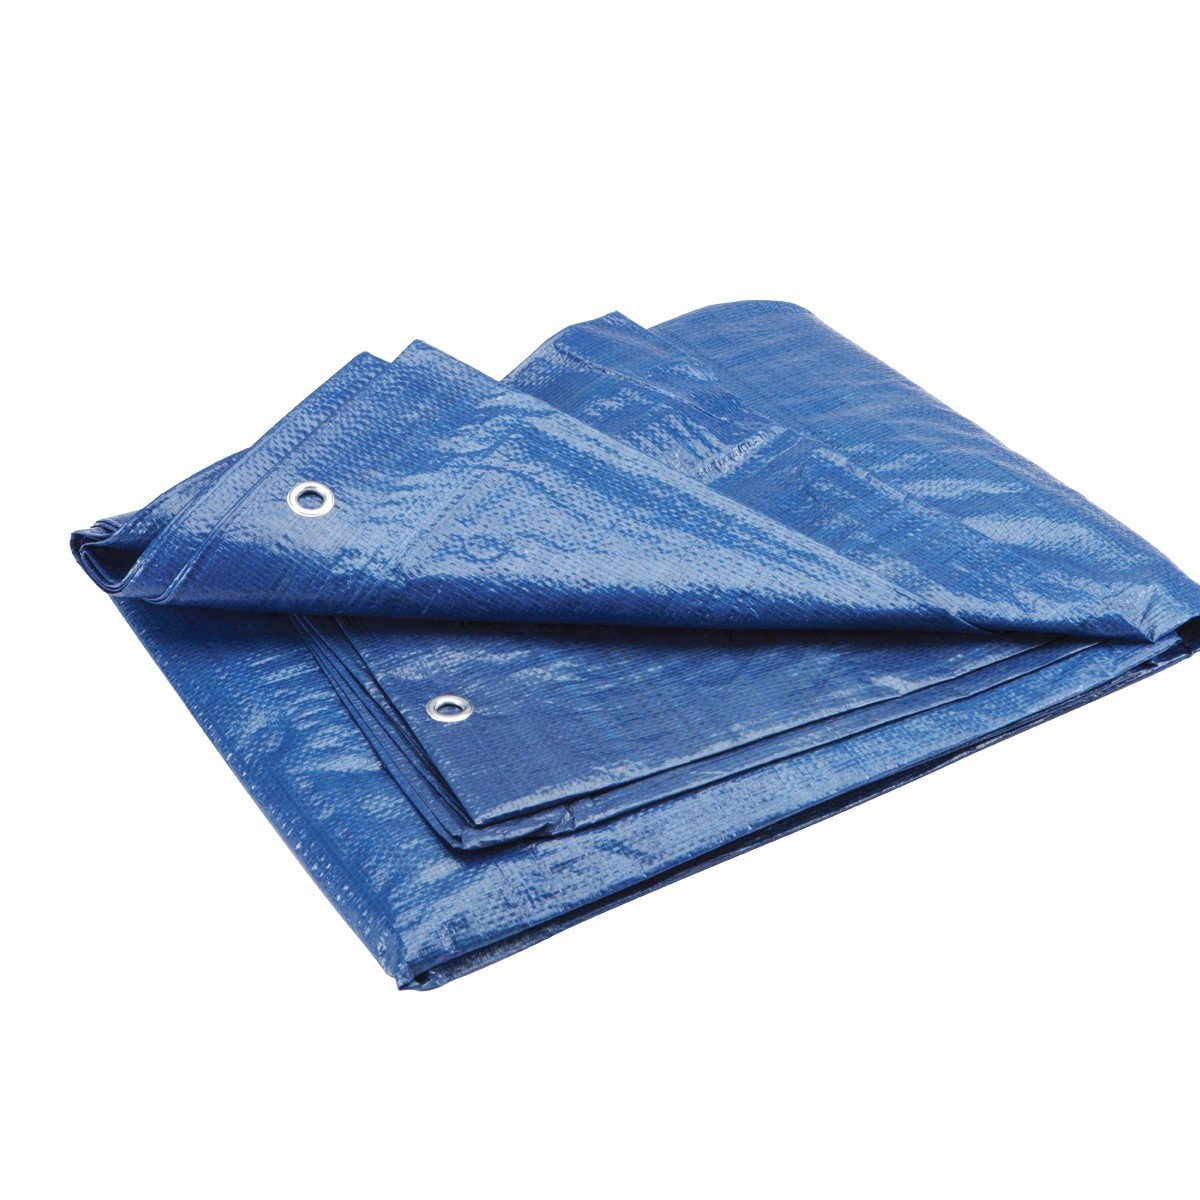 7 ft. 4 in. x 9 ft. 6 in. Blue All Purpose/Weather Resistant Tarp 90 Day Warranty 90 Day Warranty